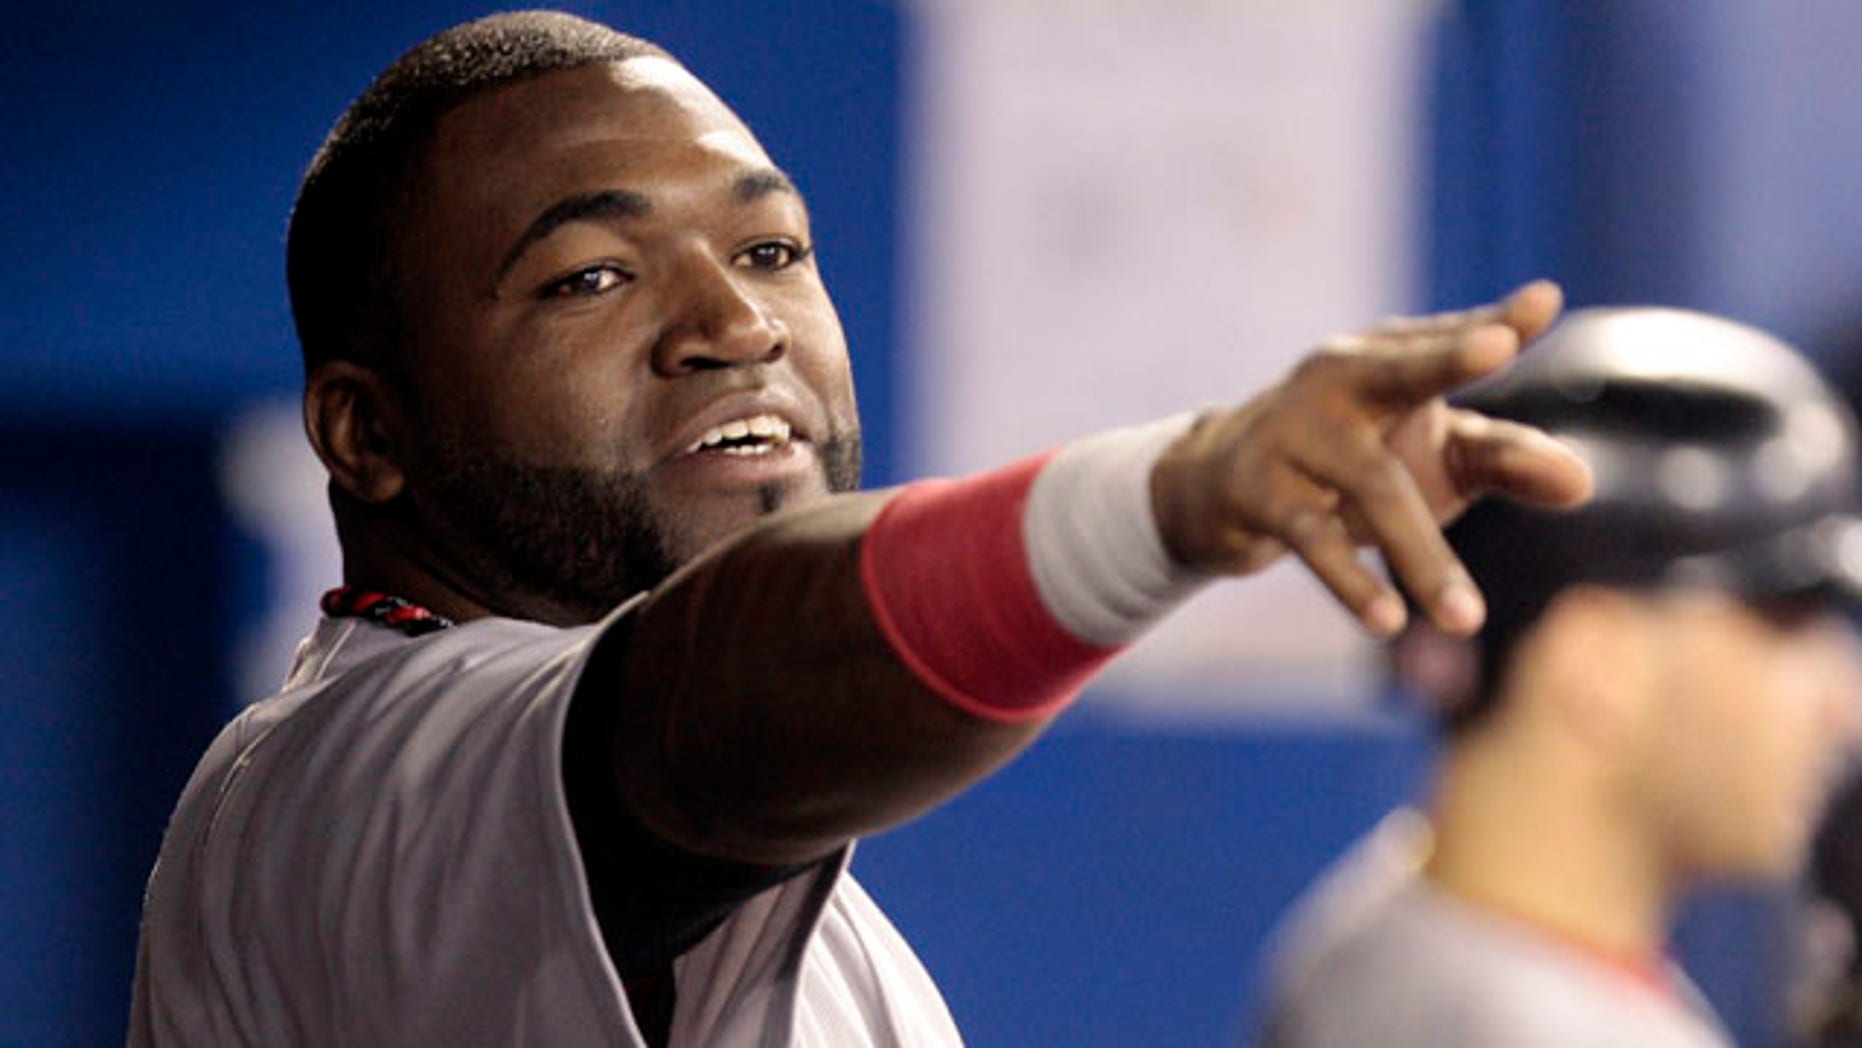 David Ortiz #34 of the Boston Red Sox celebrates his home run against the Toronto Blue Jays during MLB action at the Rogers Centre September 7, 2011 in Toronto, Ontario, Canada. (Photo by Abelimages/Getty Images)